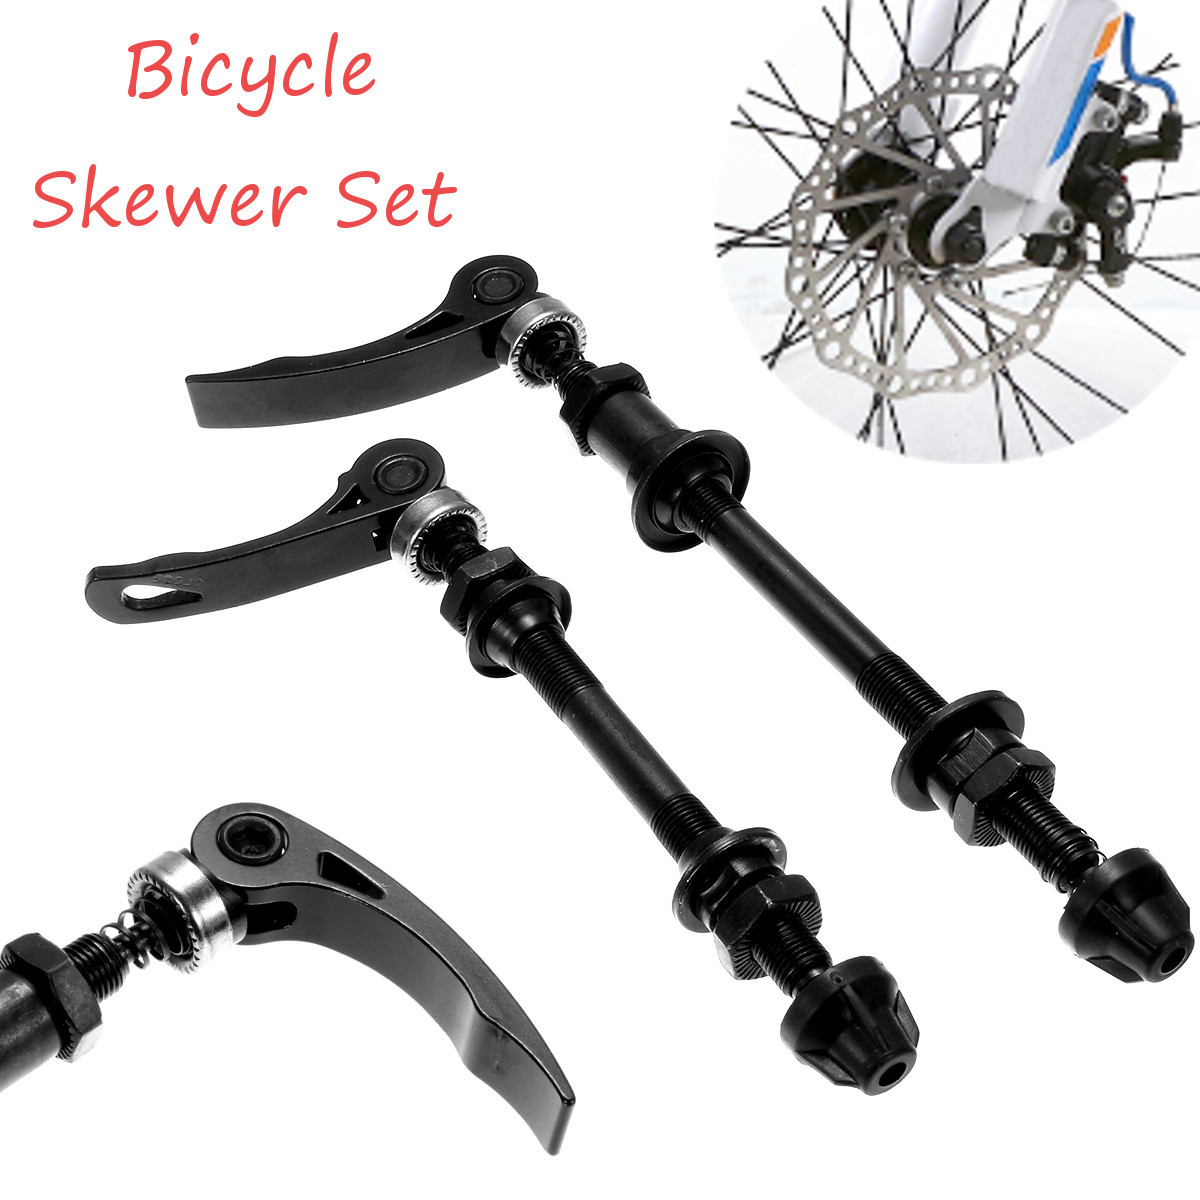 Bicycle Quick Release Axle Wheel Skewer Front